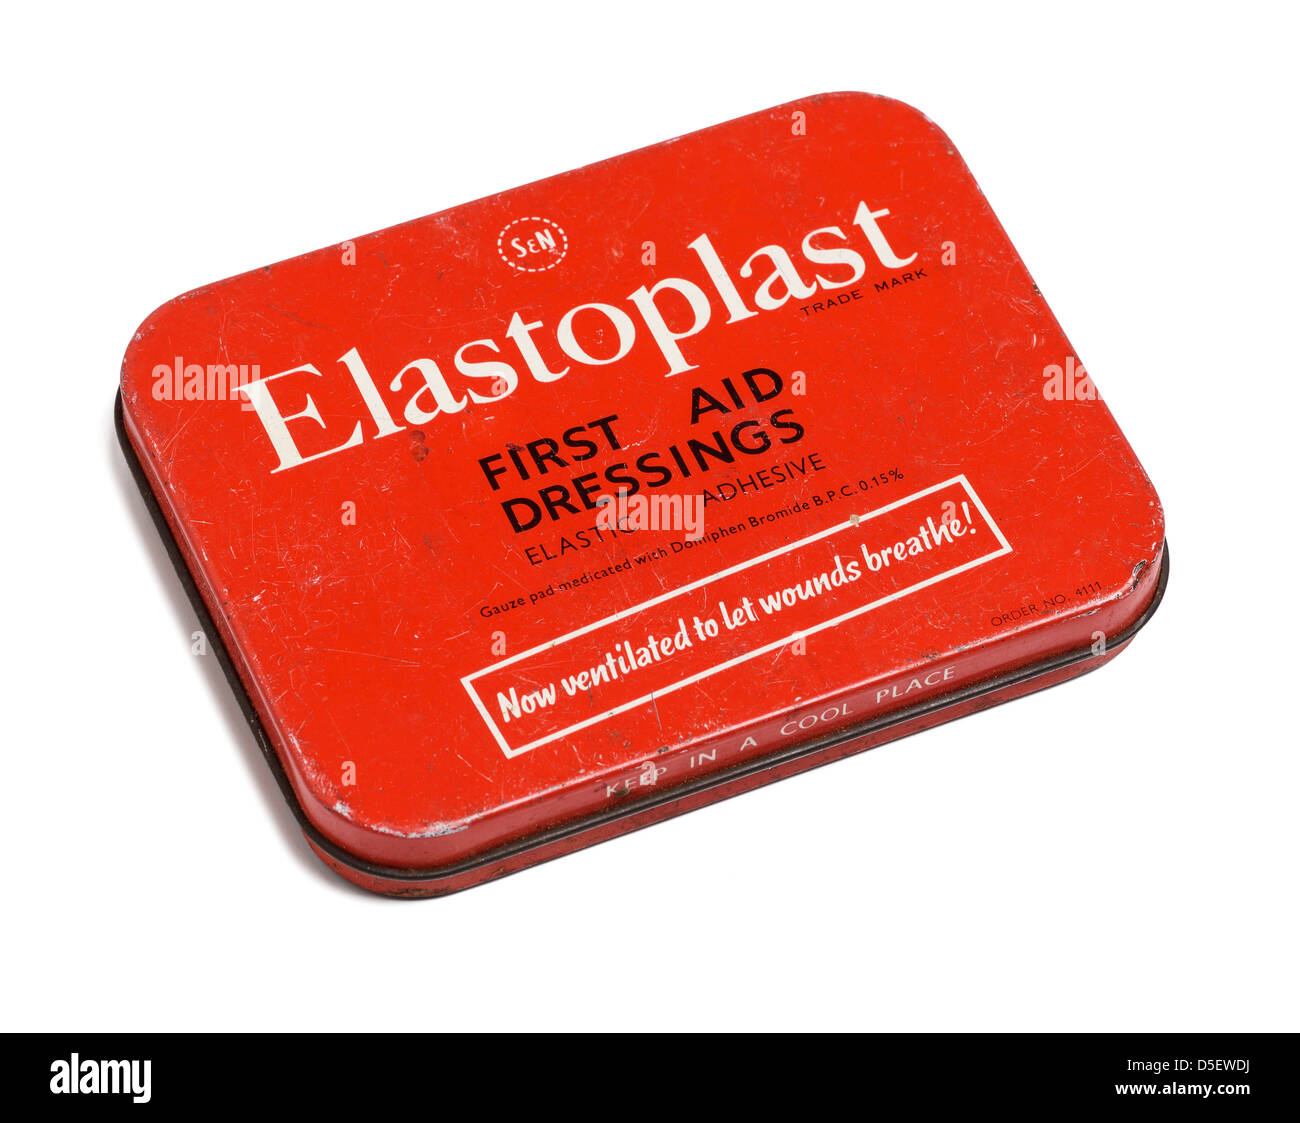 Old tin of Elastoplast plasters - Stock Image